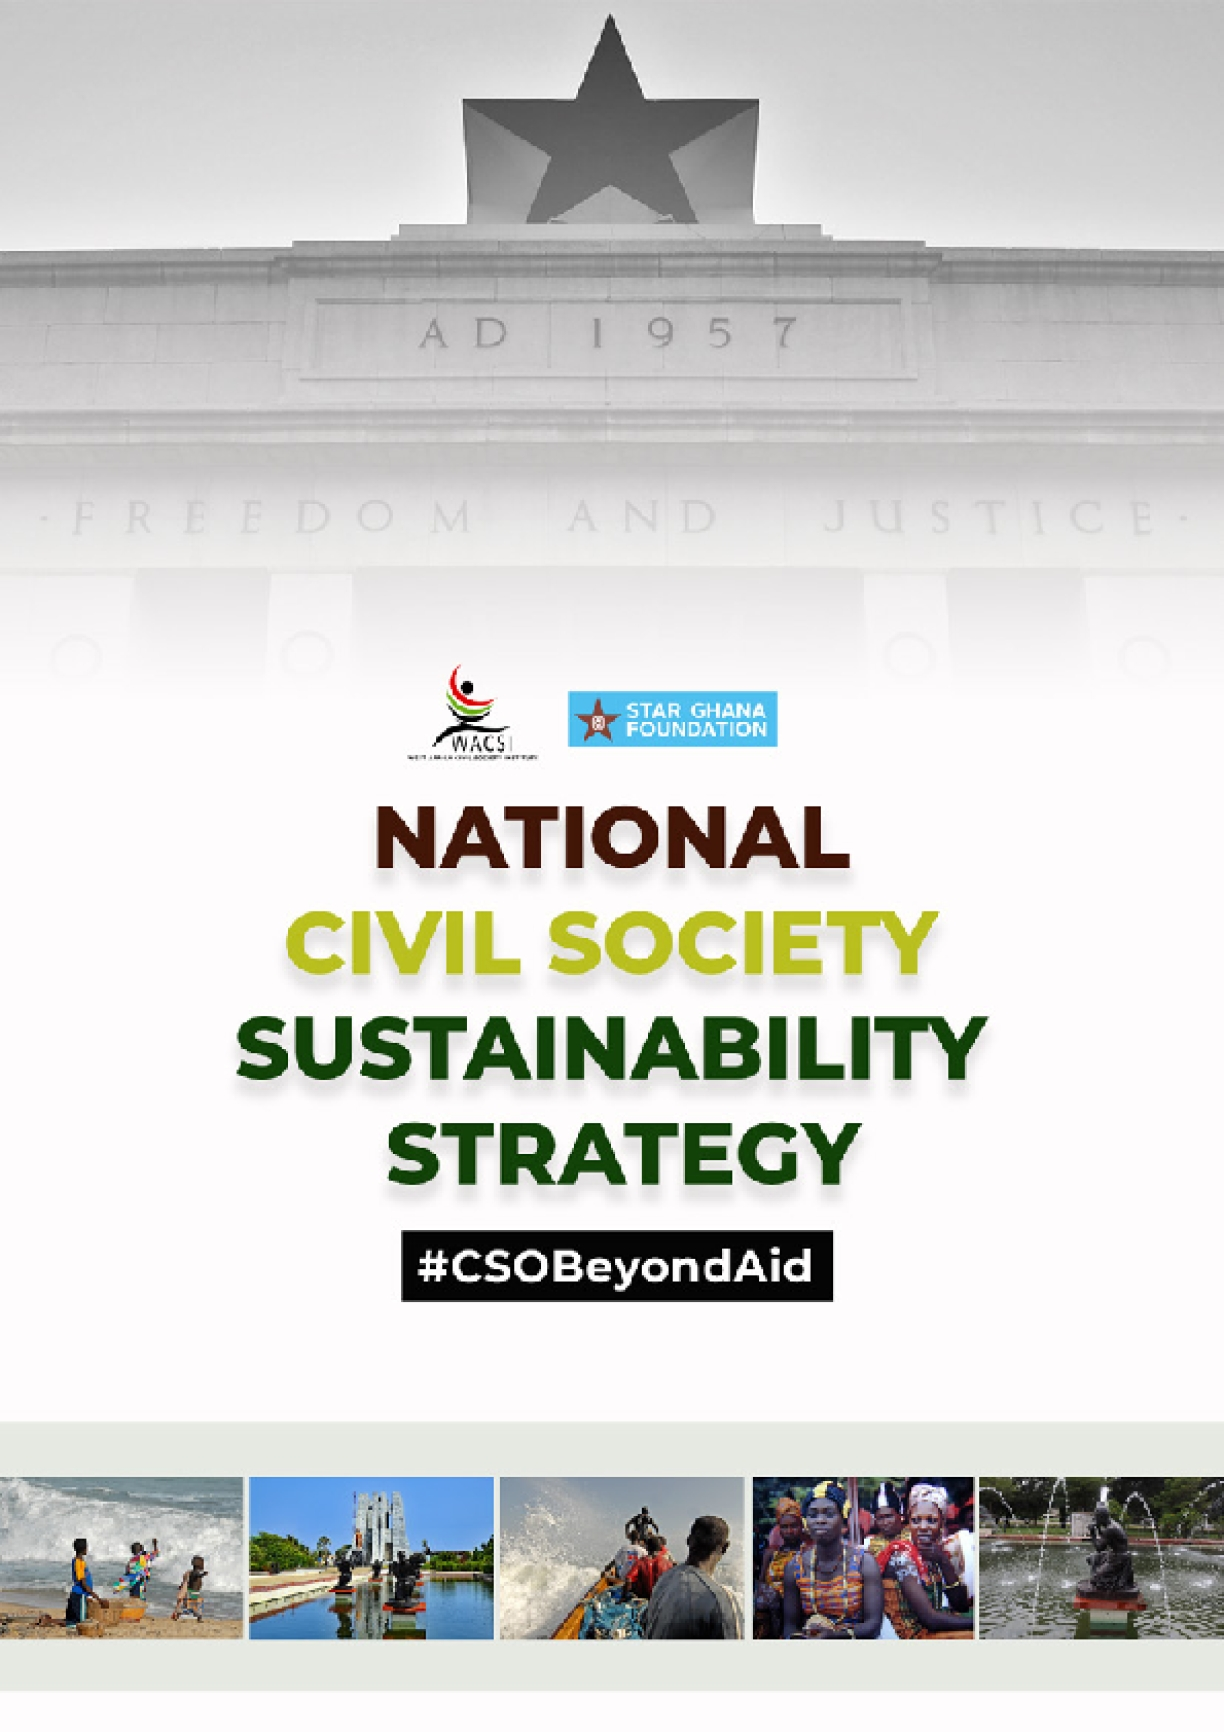 National Civil Society Sustainability Strategy for Civil Society in Ghana